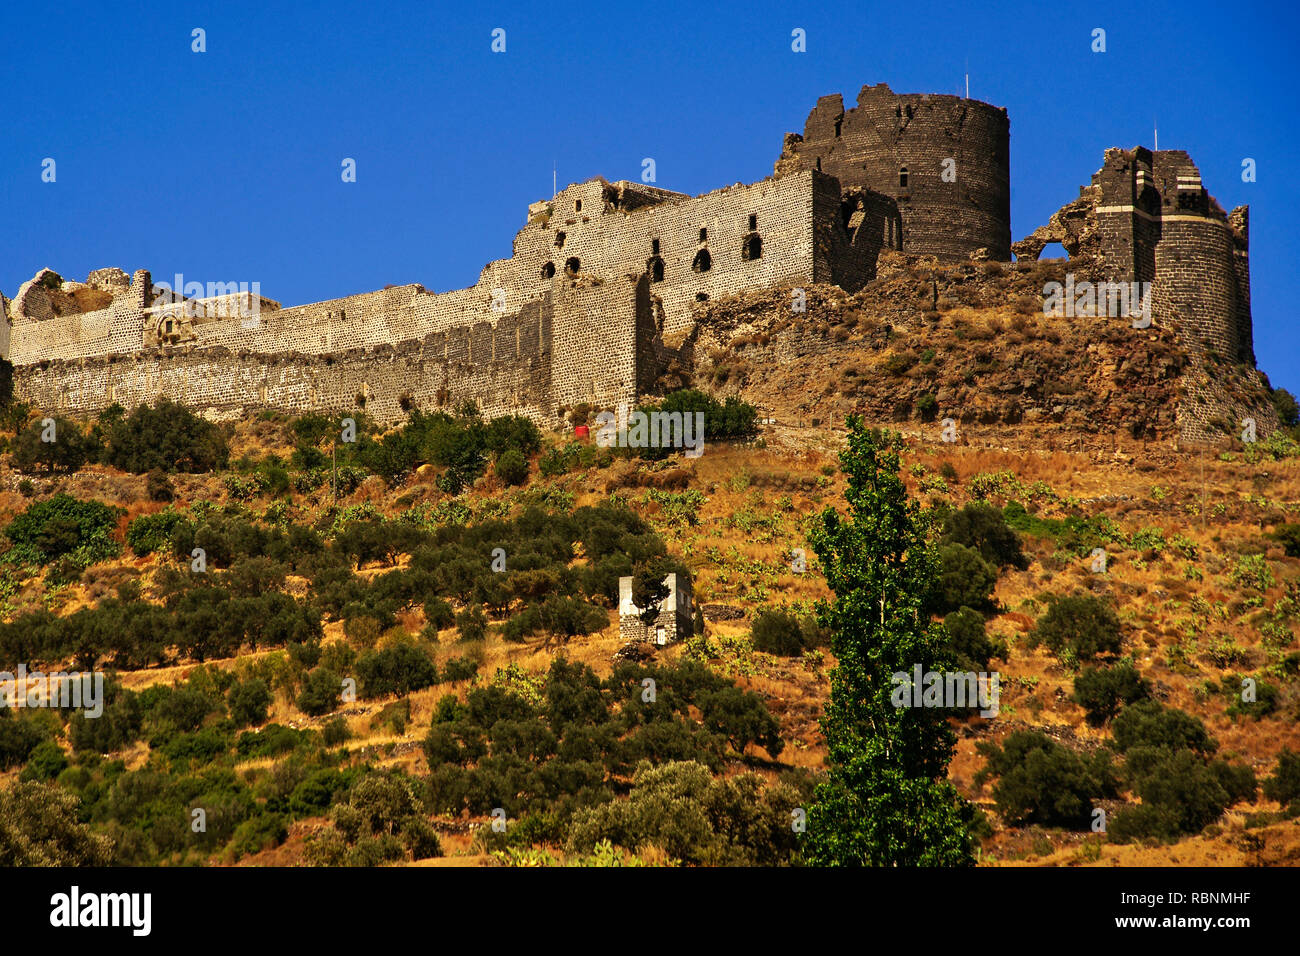 Chapel, The Margat castle of the crusaders, Marqab. Syria, Middle East - Stock Image